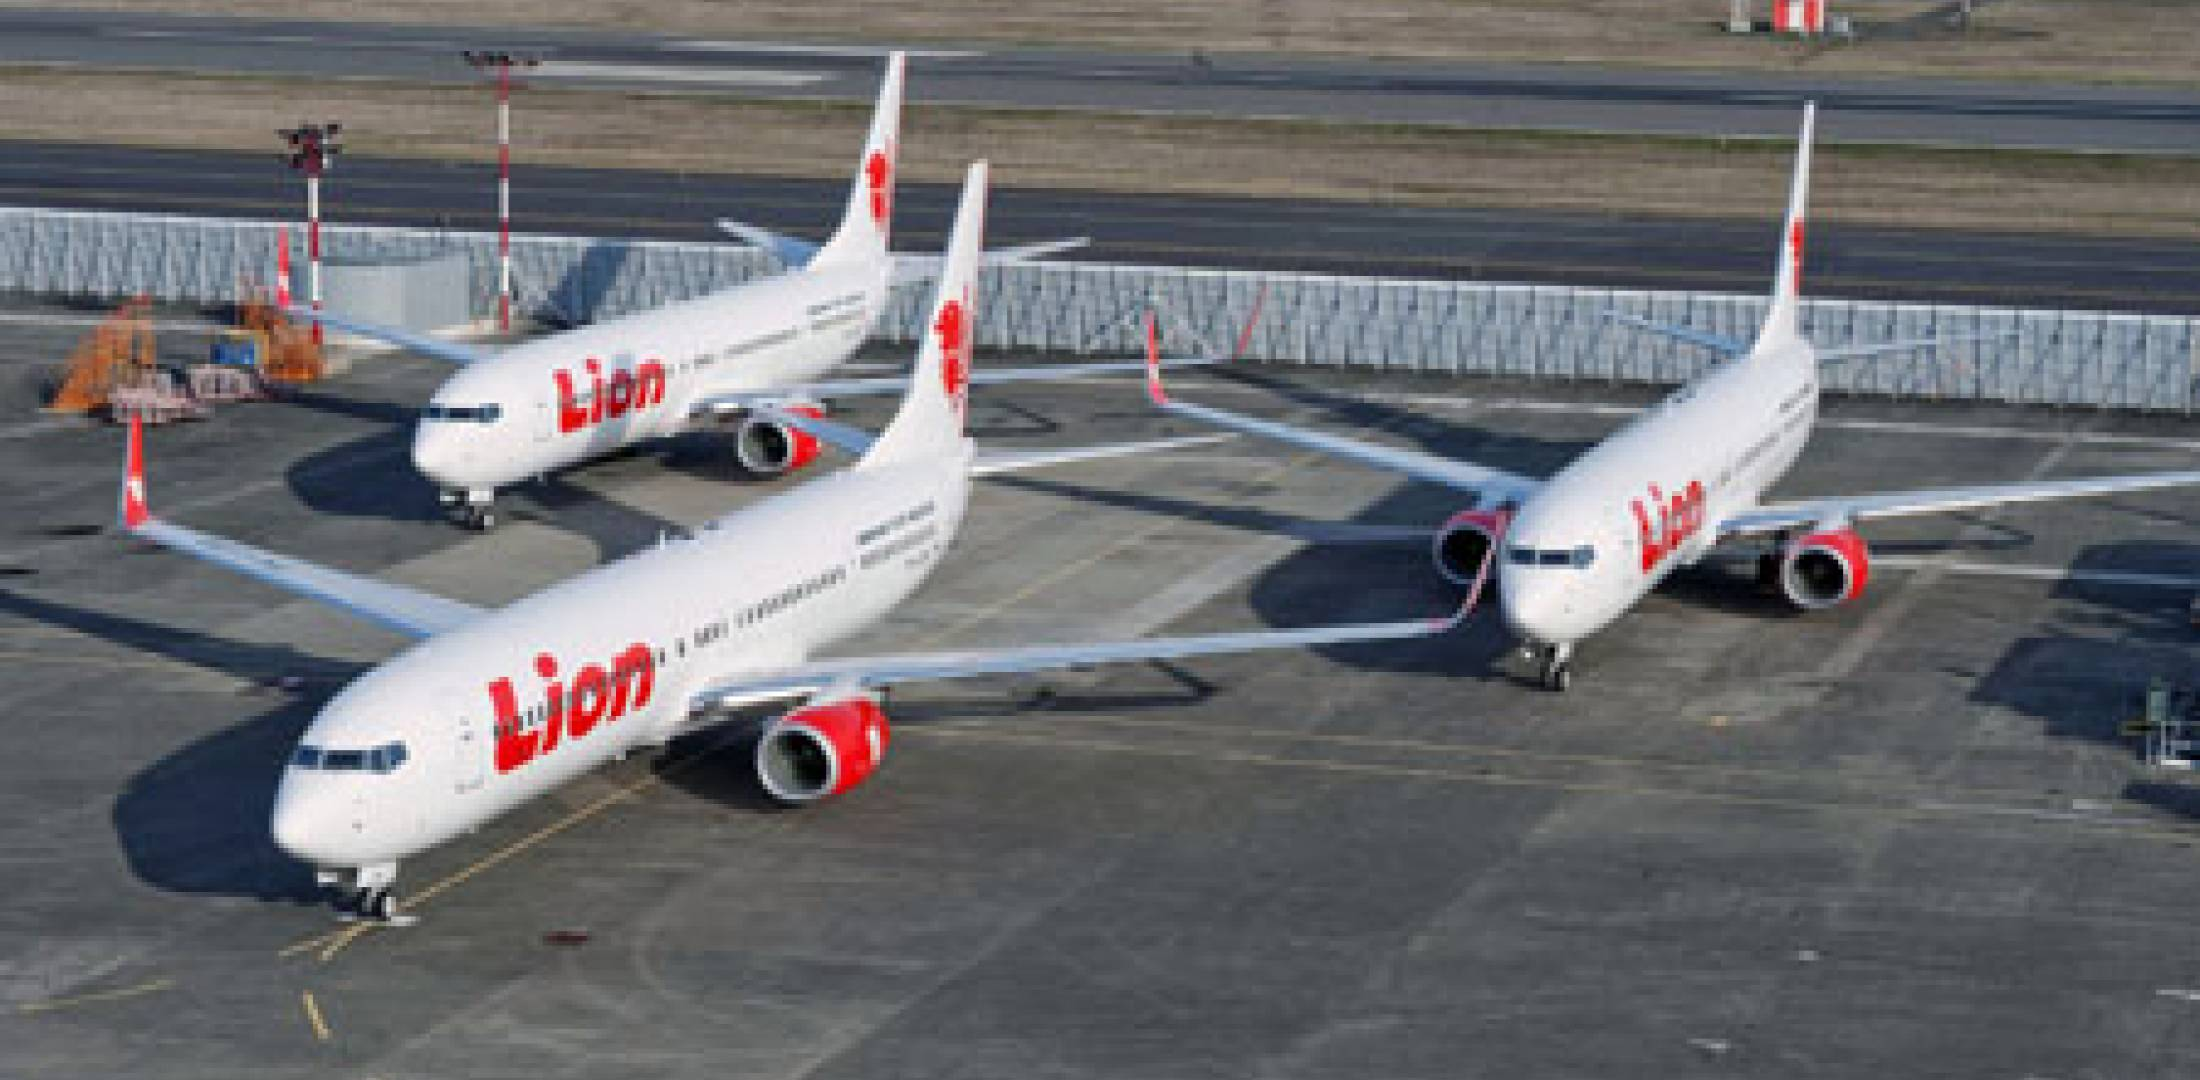 Indonesia's Lion Air group, Boeing largest customer | Aviation Int'l News